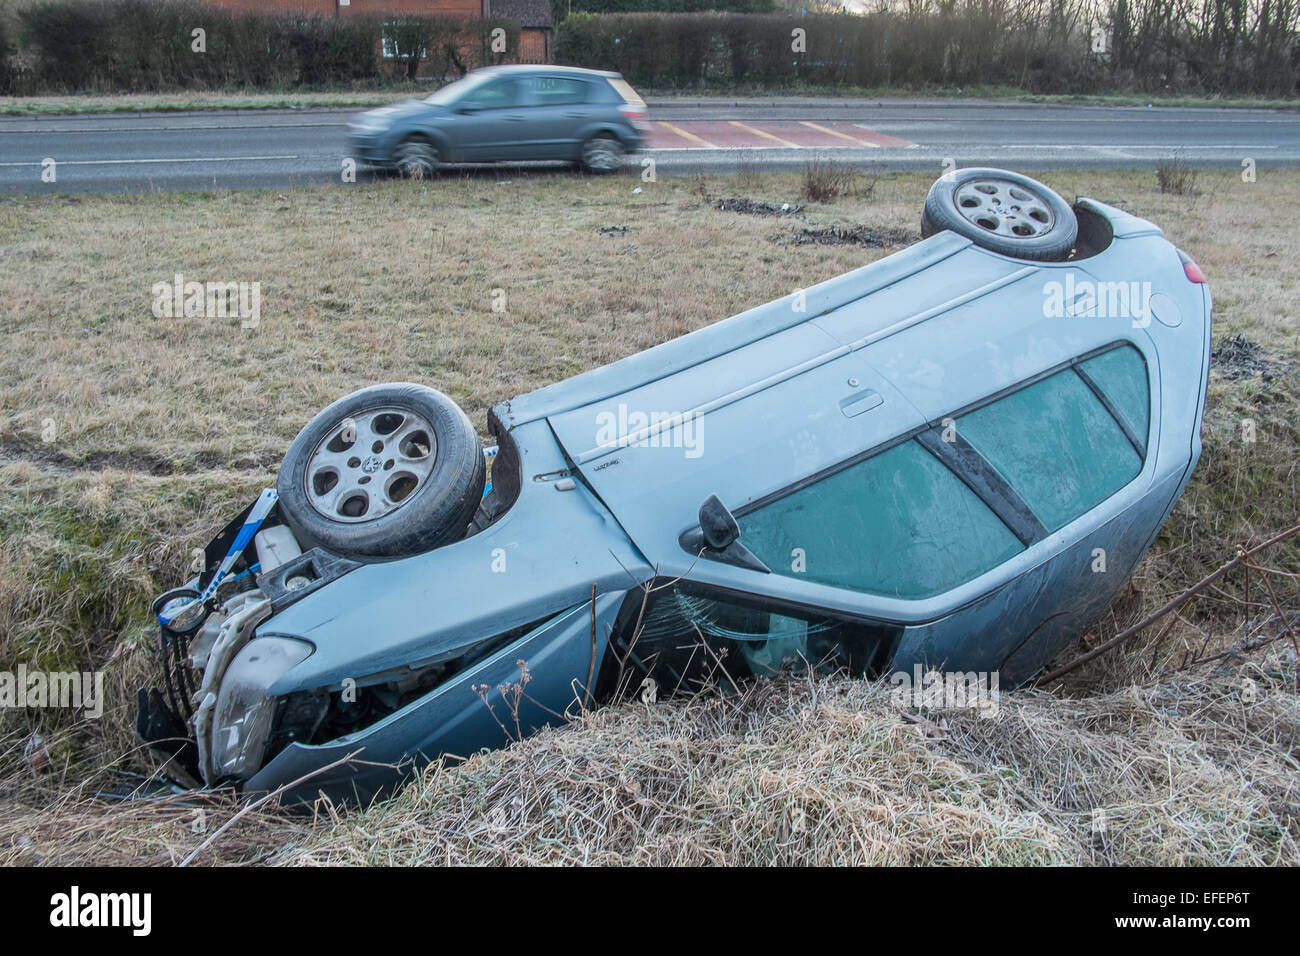 a388-near-downton-wiltshire-uk-2nd-february-2015-car-remains-in-ditch-EFEP6T.jpg